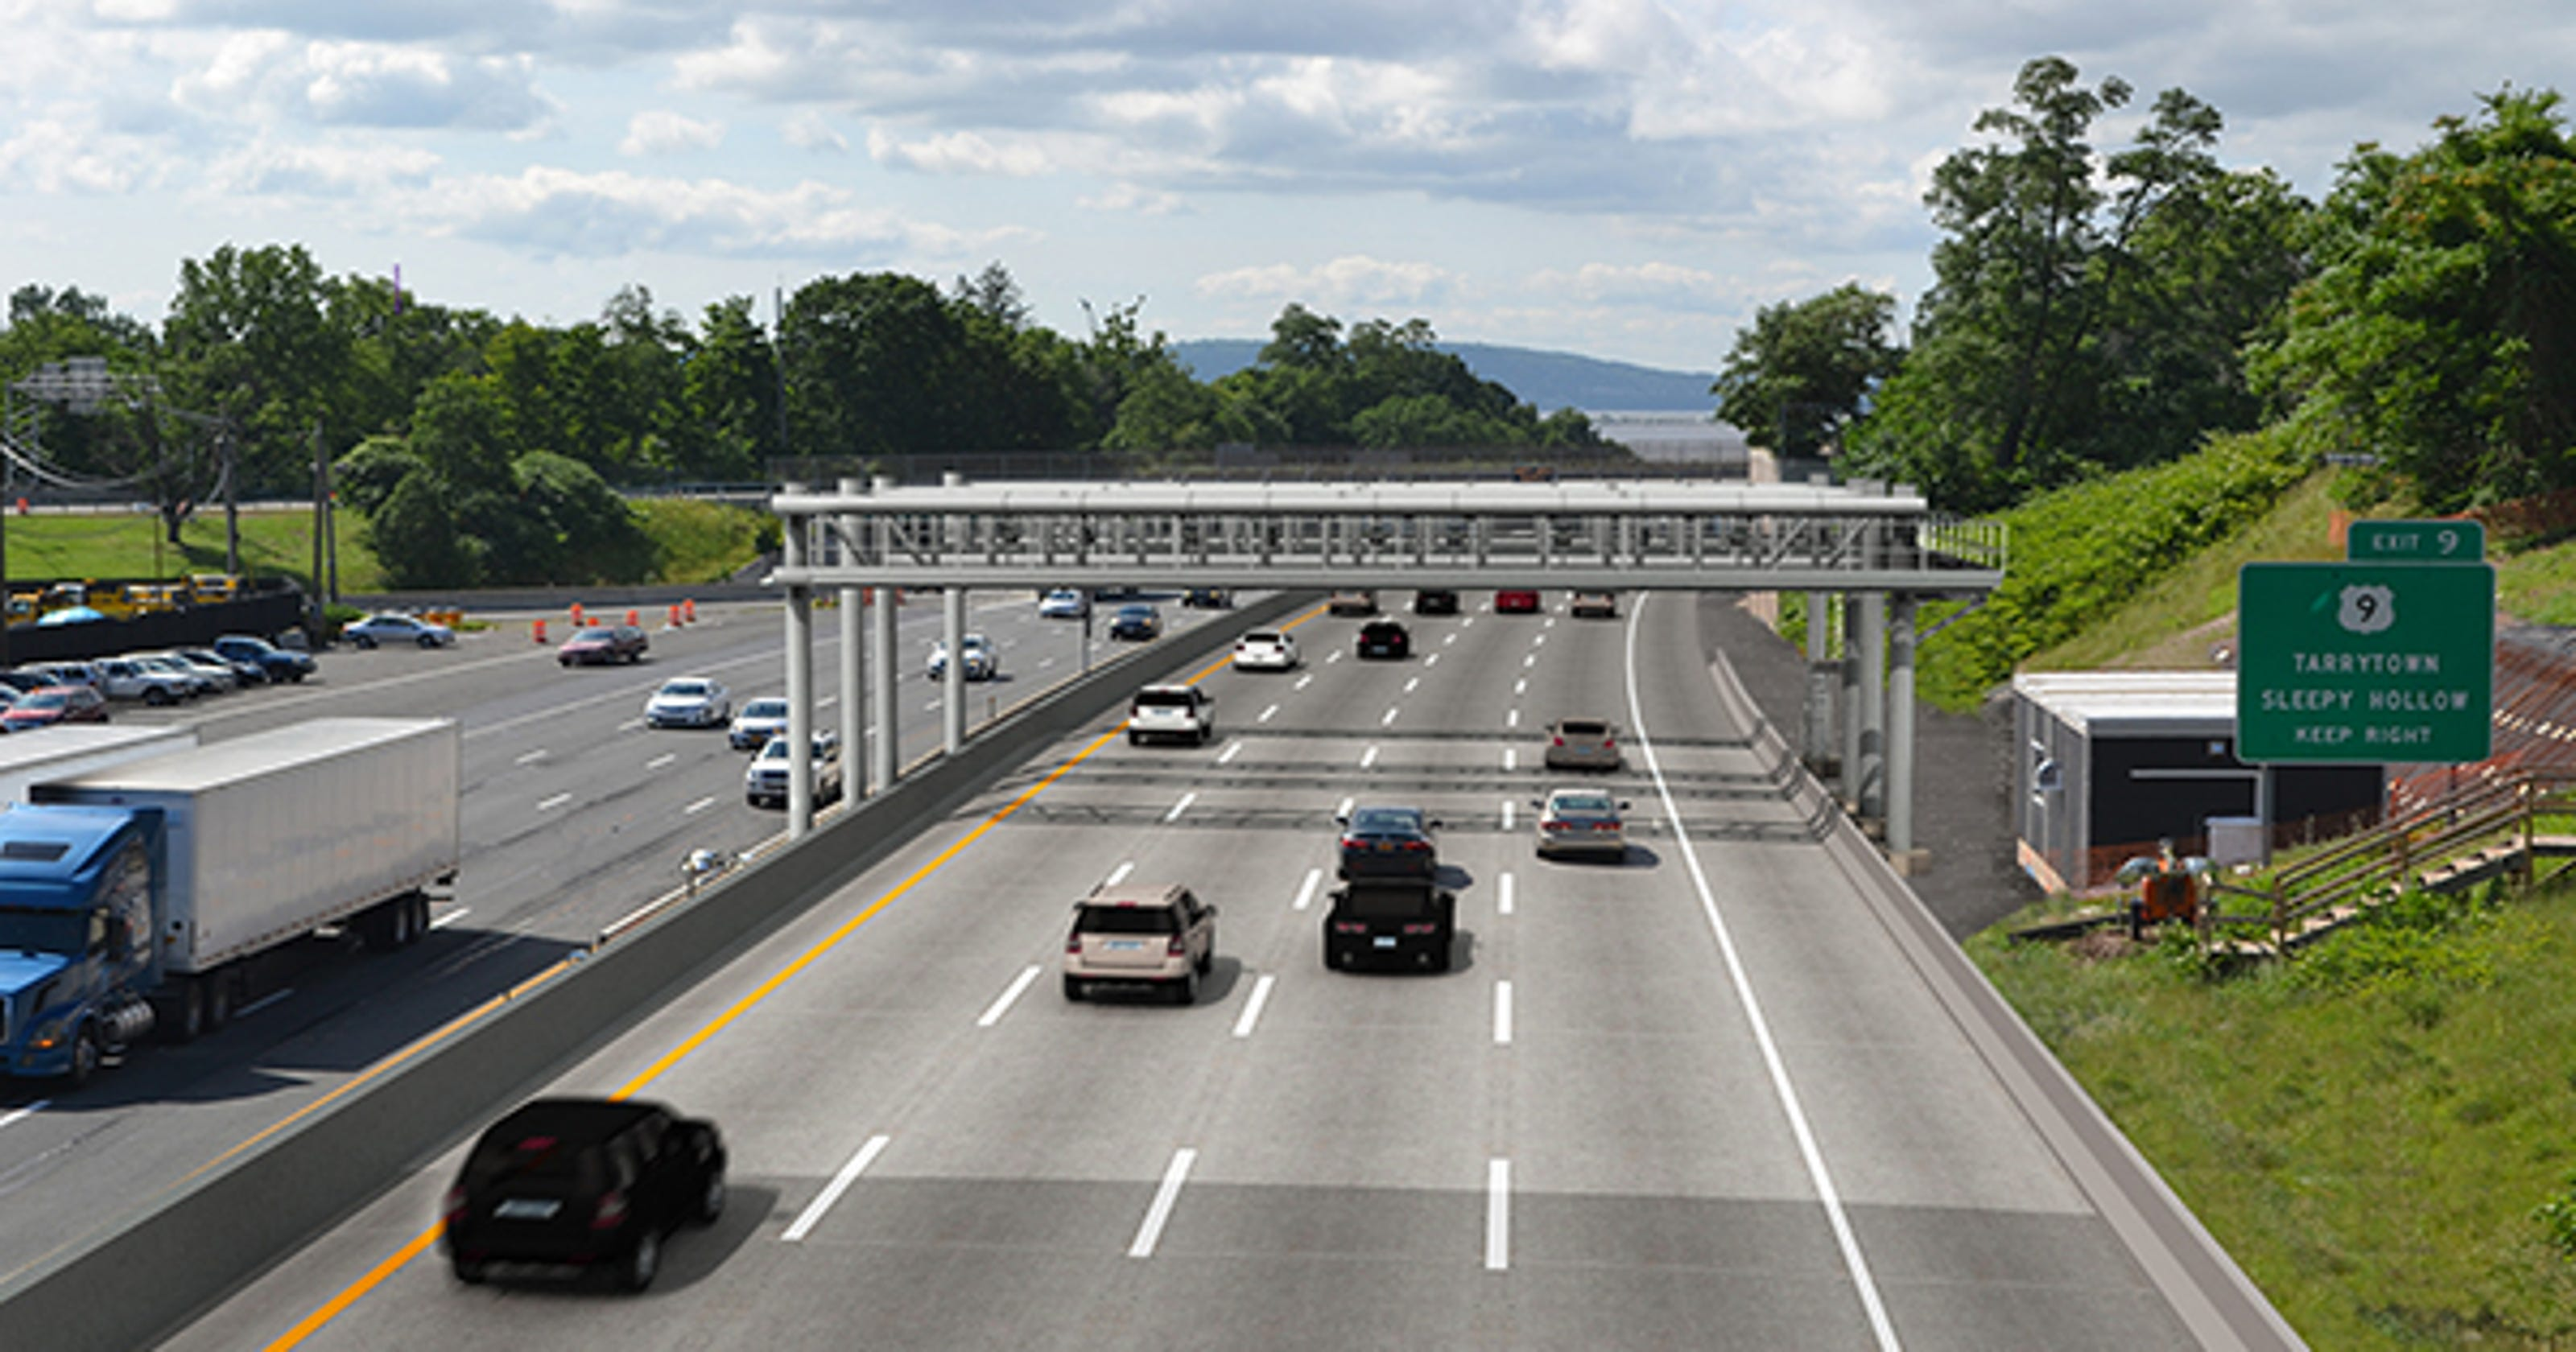 Tappan Zee Bridge will have new toll collection system